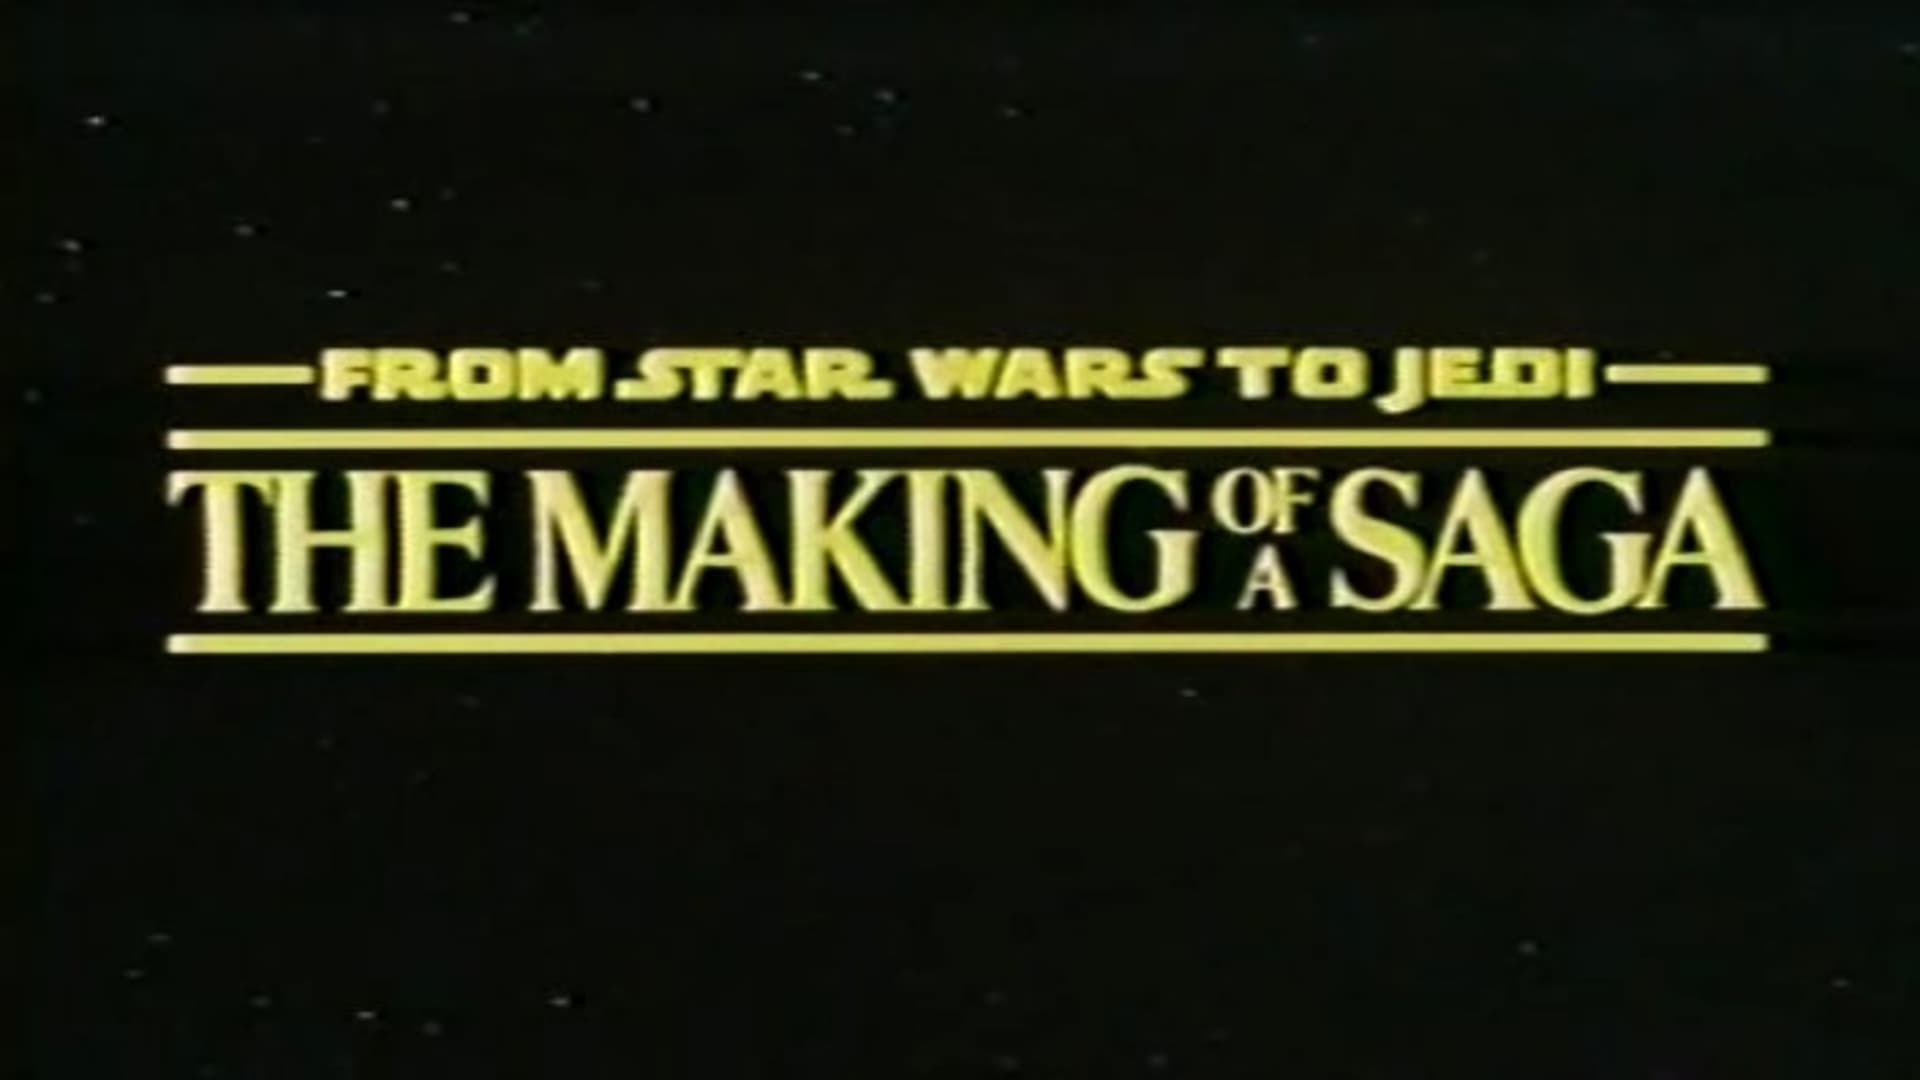 From Star Wars to Jedi